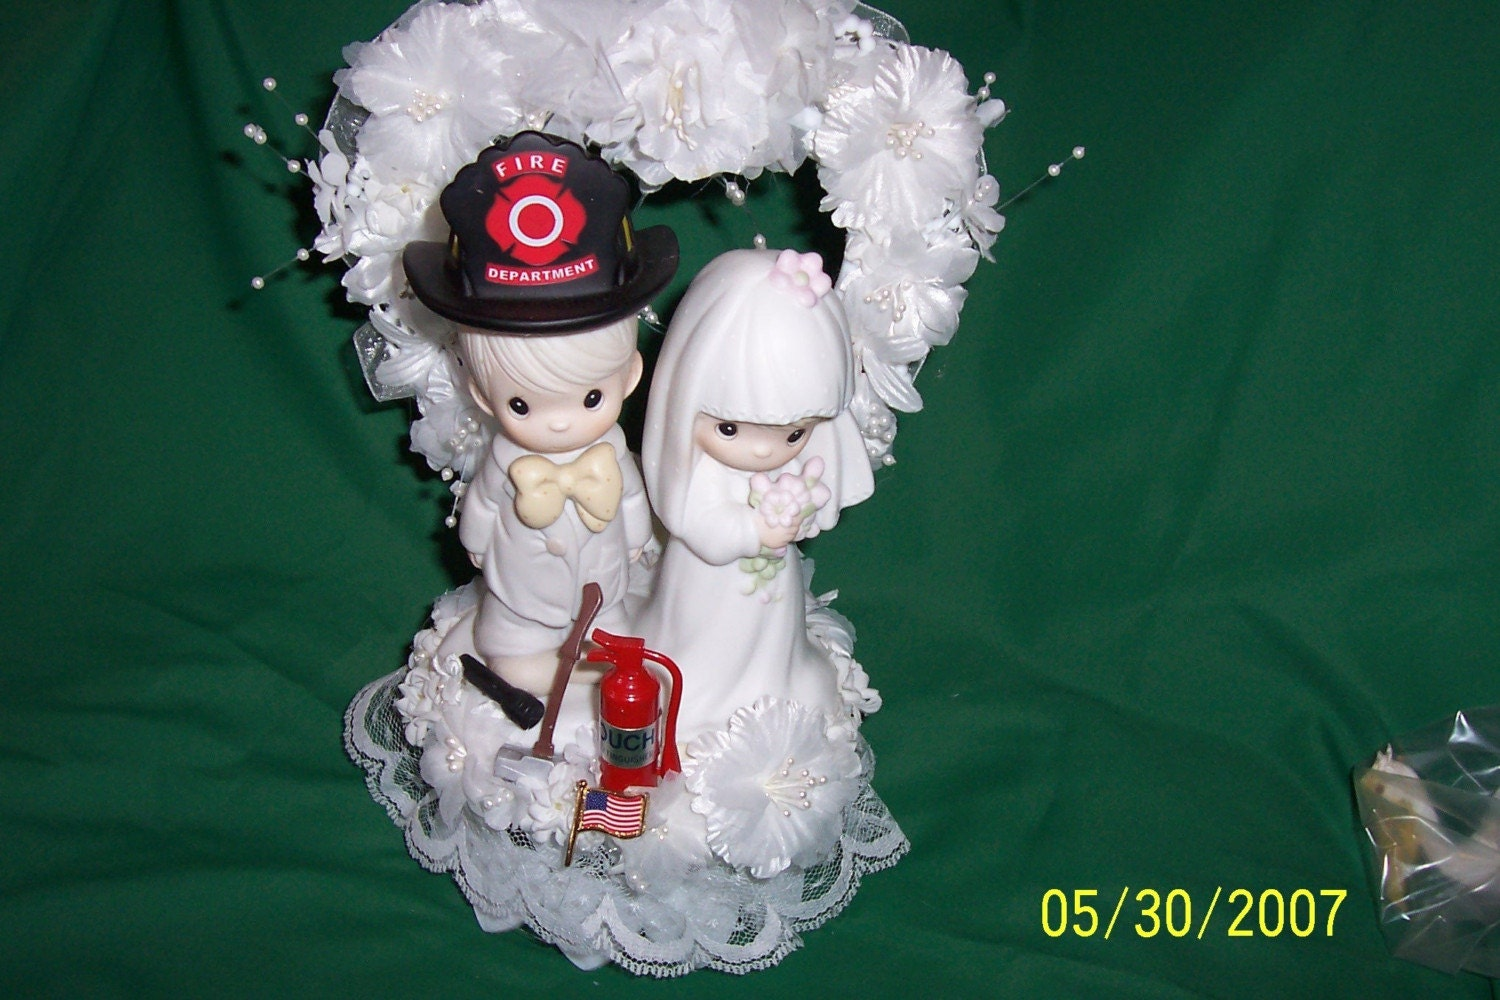 Precious Moments Firefighter Wedding Cake Topper By Cinhol